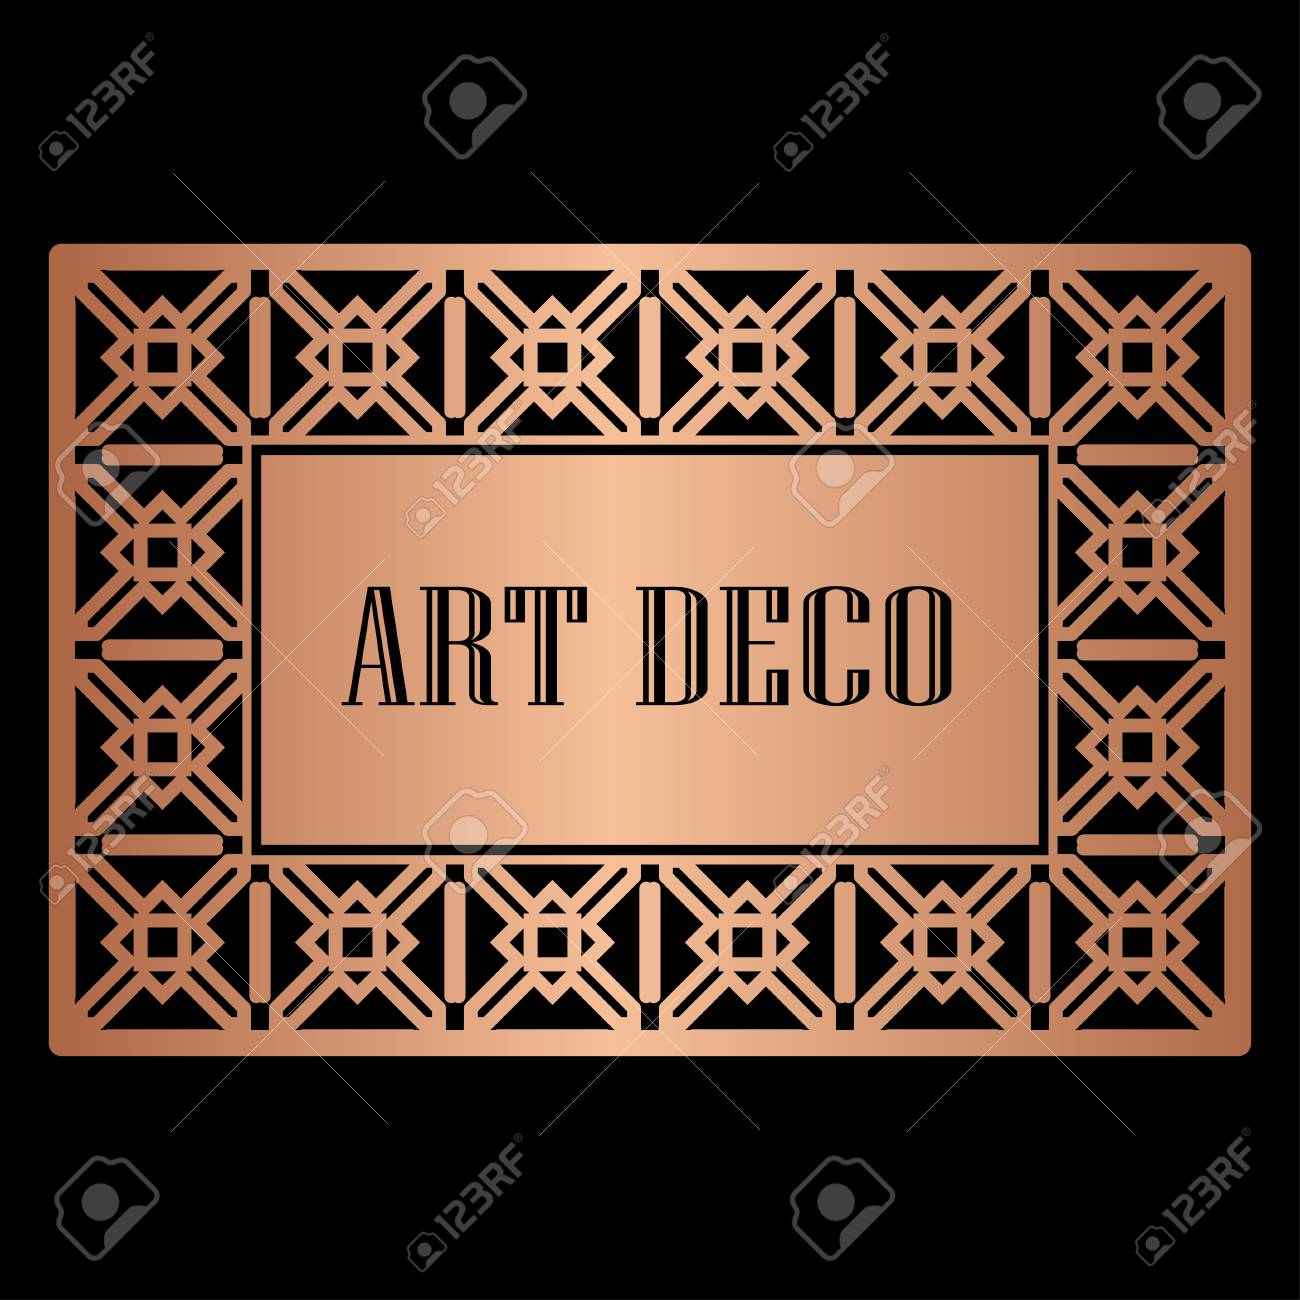 Art deco border frame template vector illustration